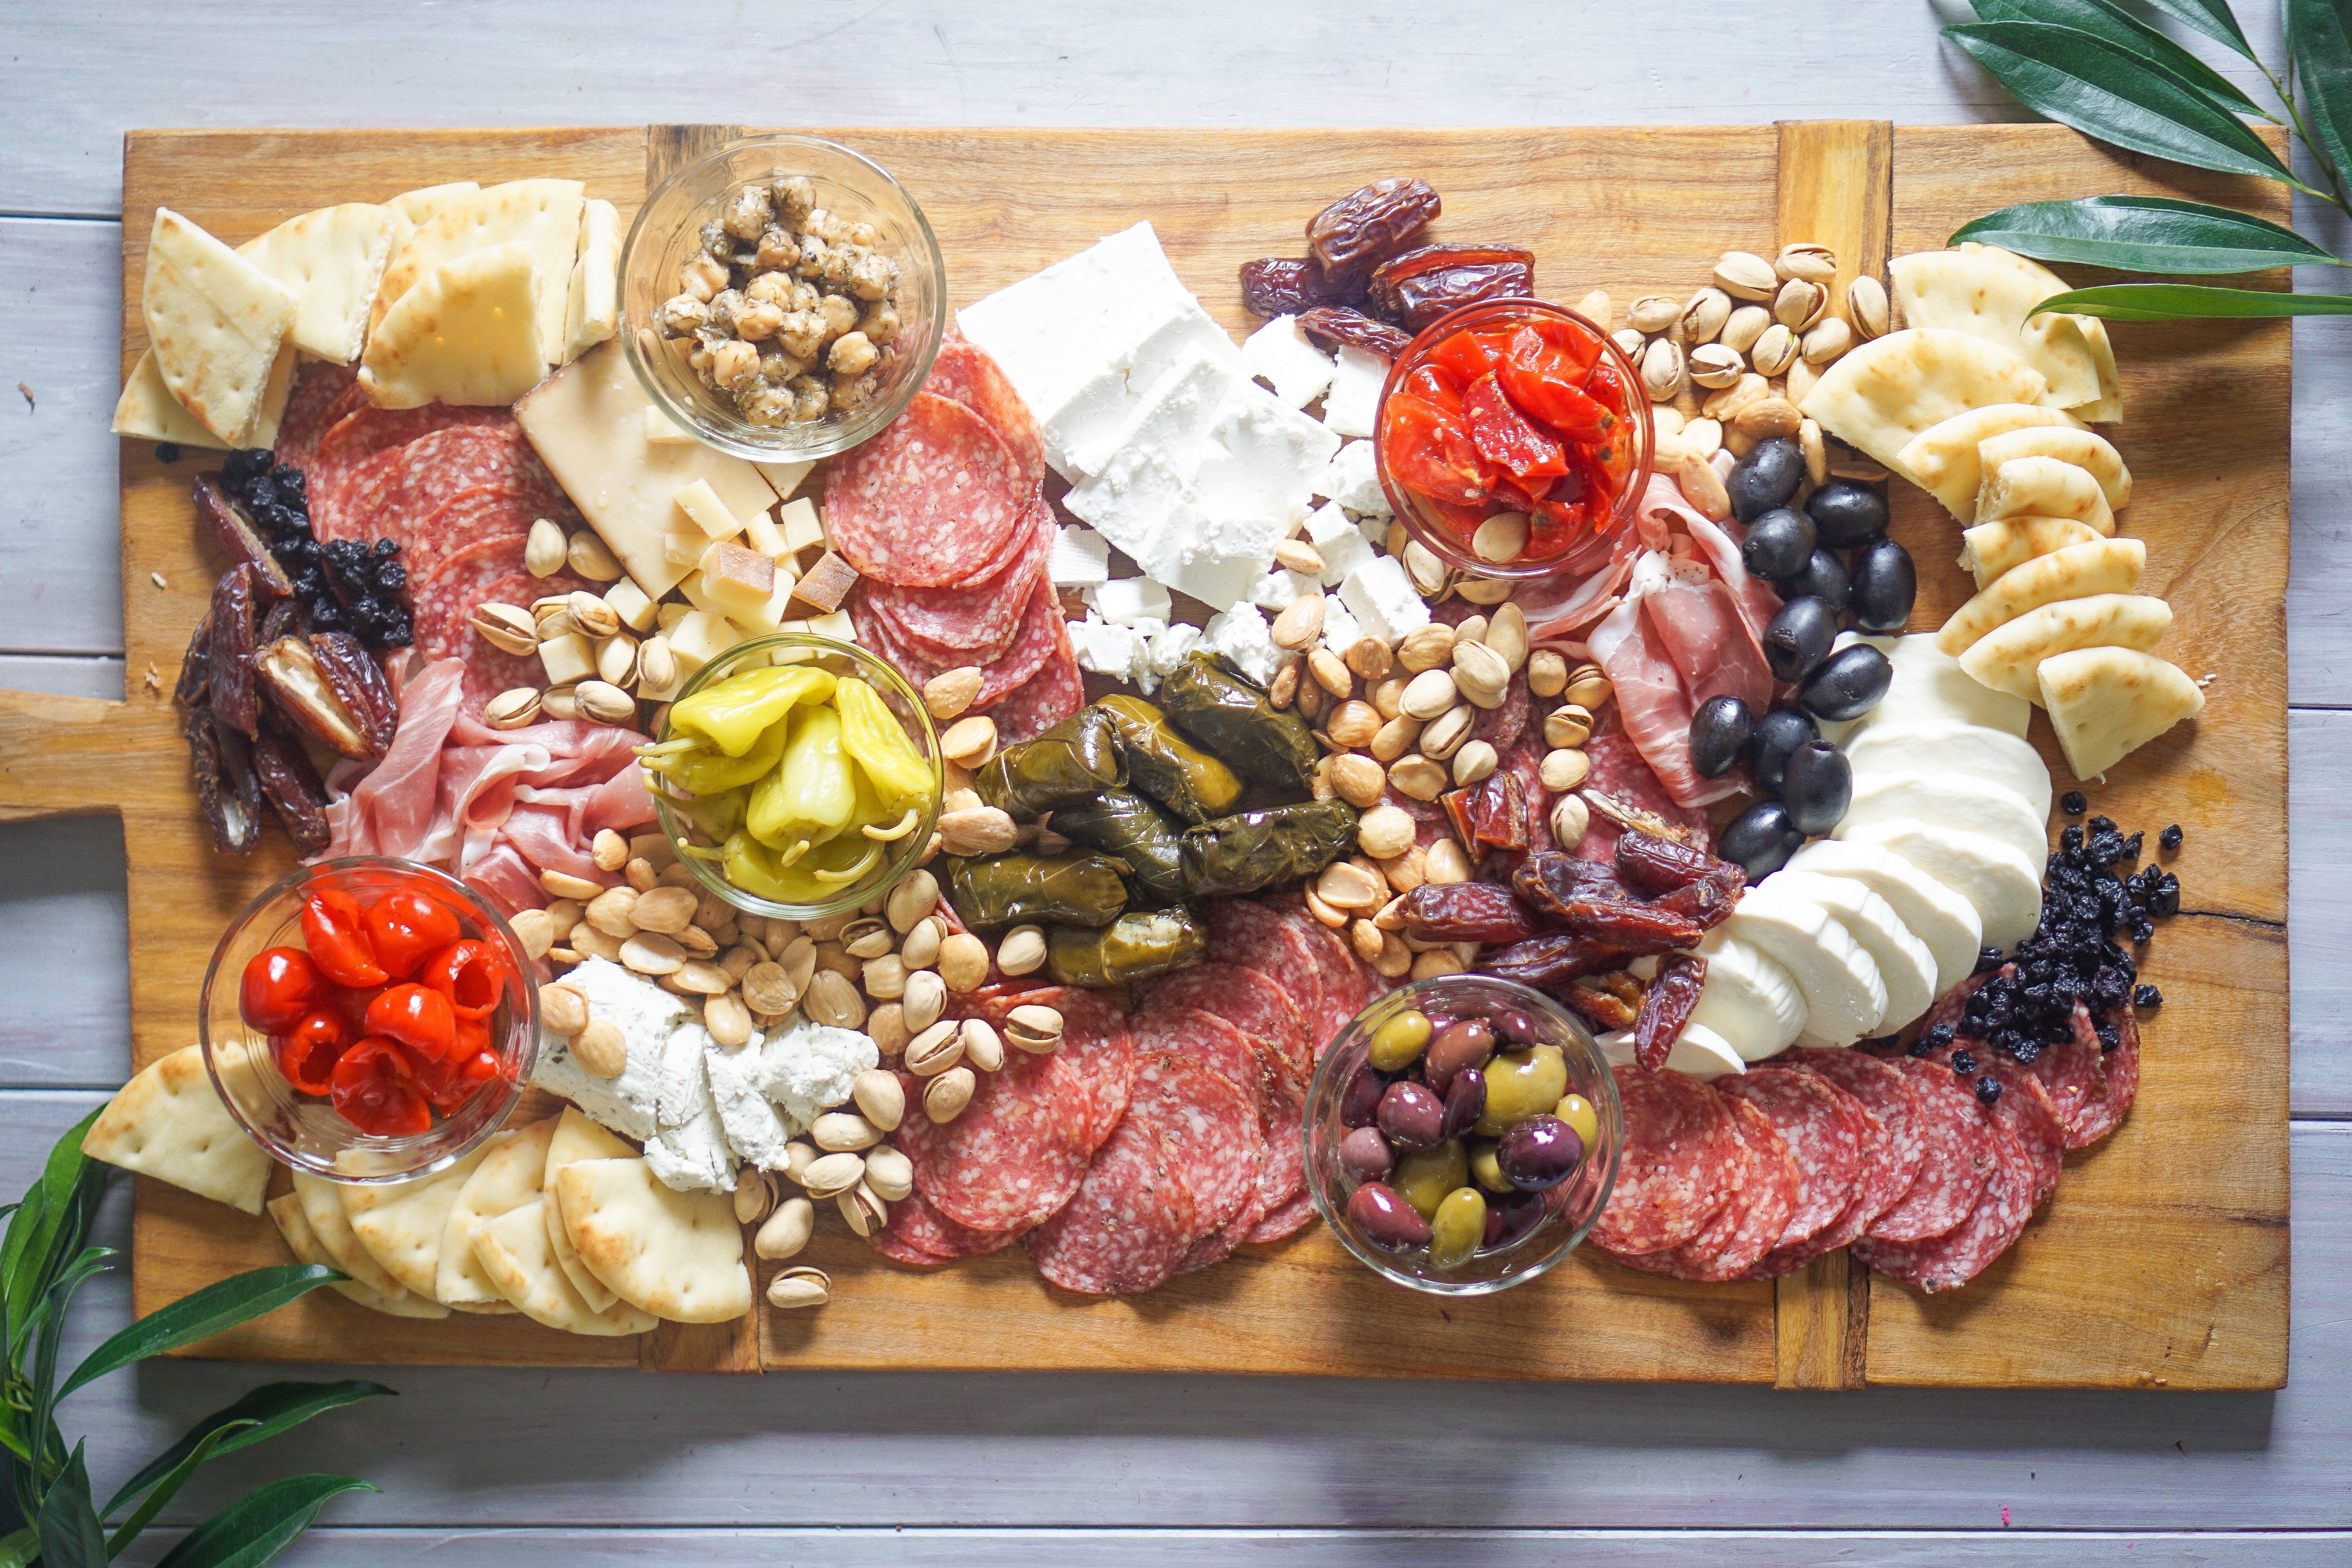 How to cut meat and cheese out of your diet